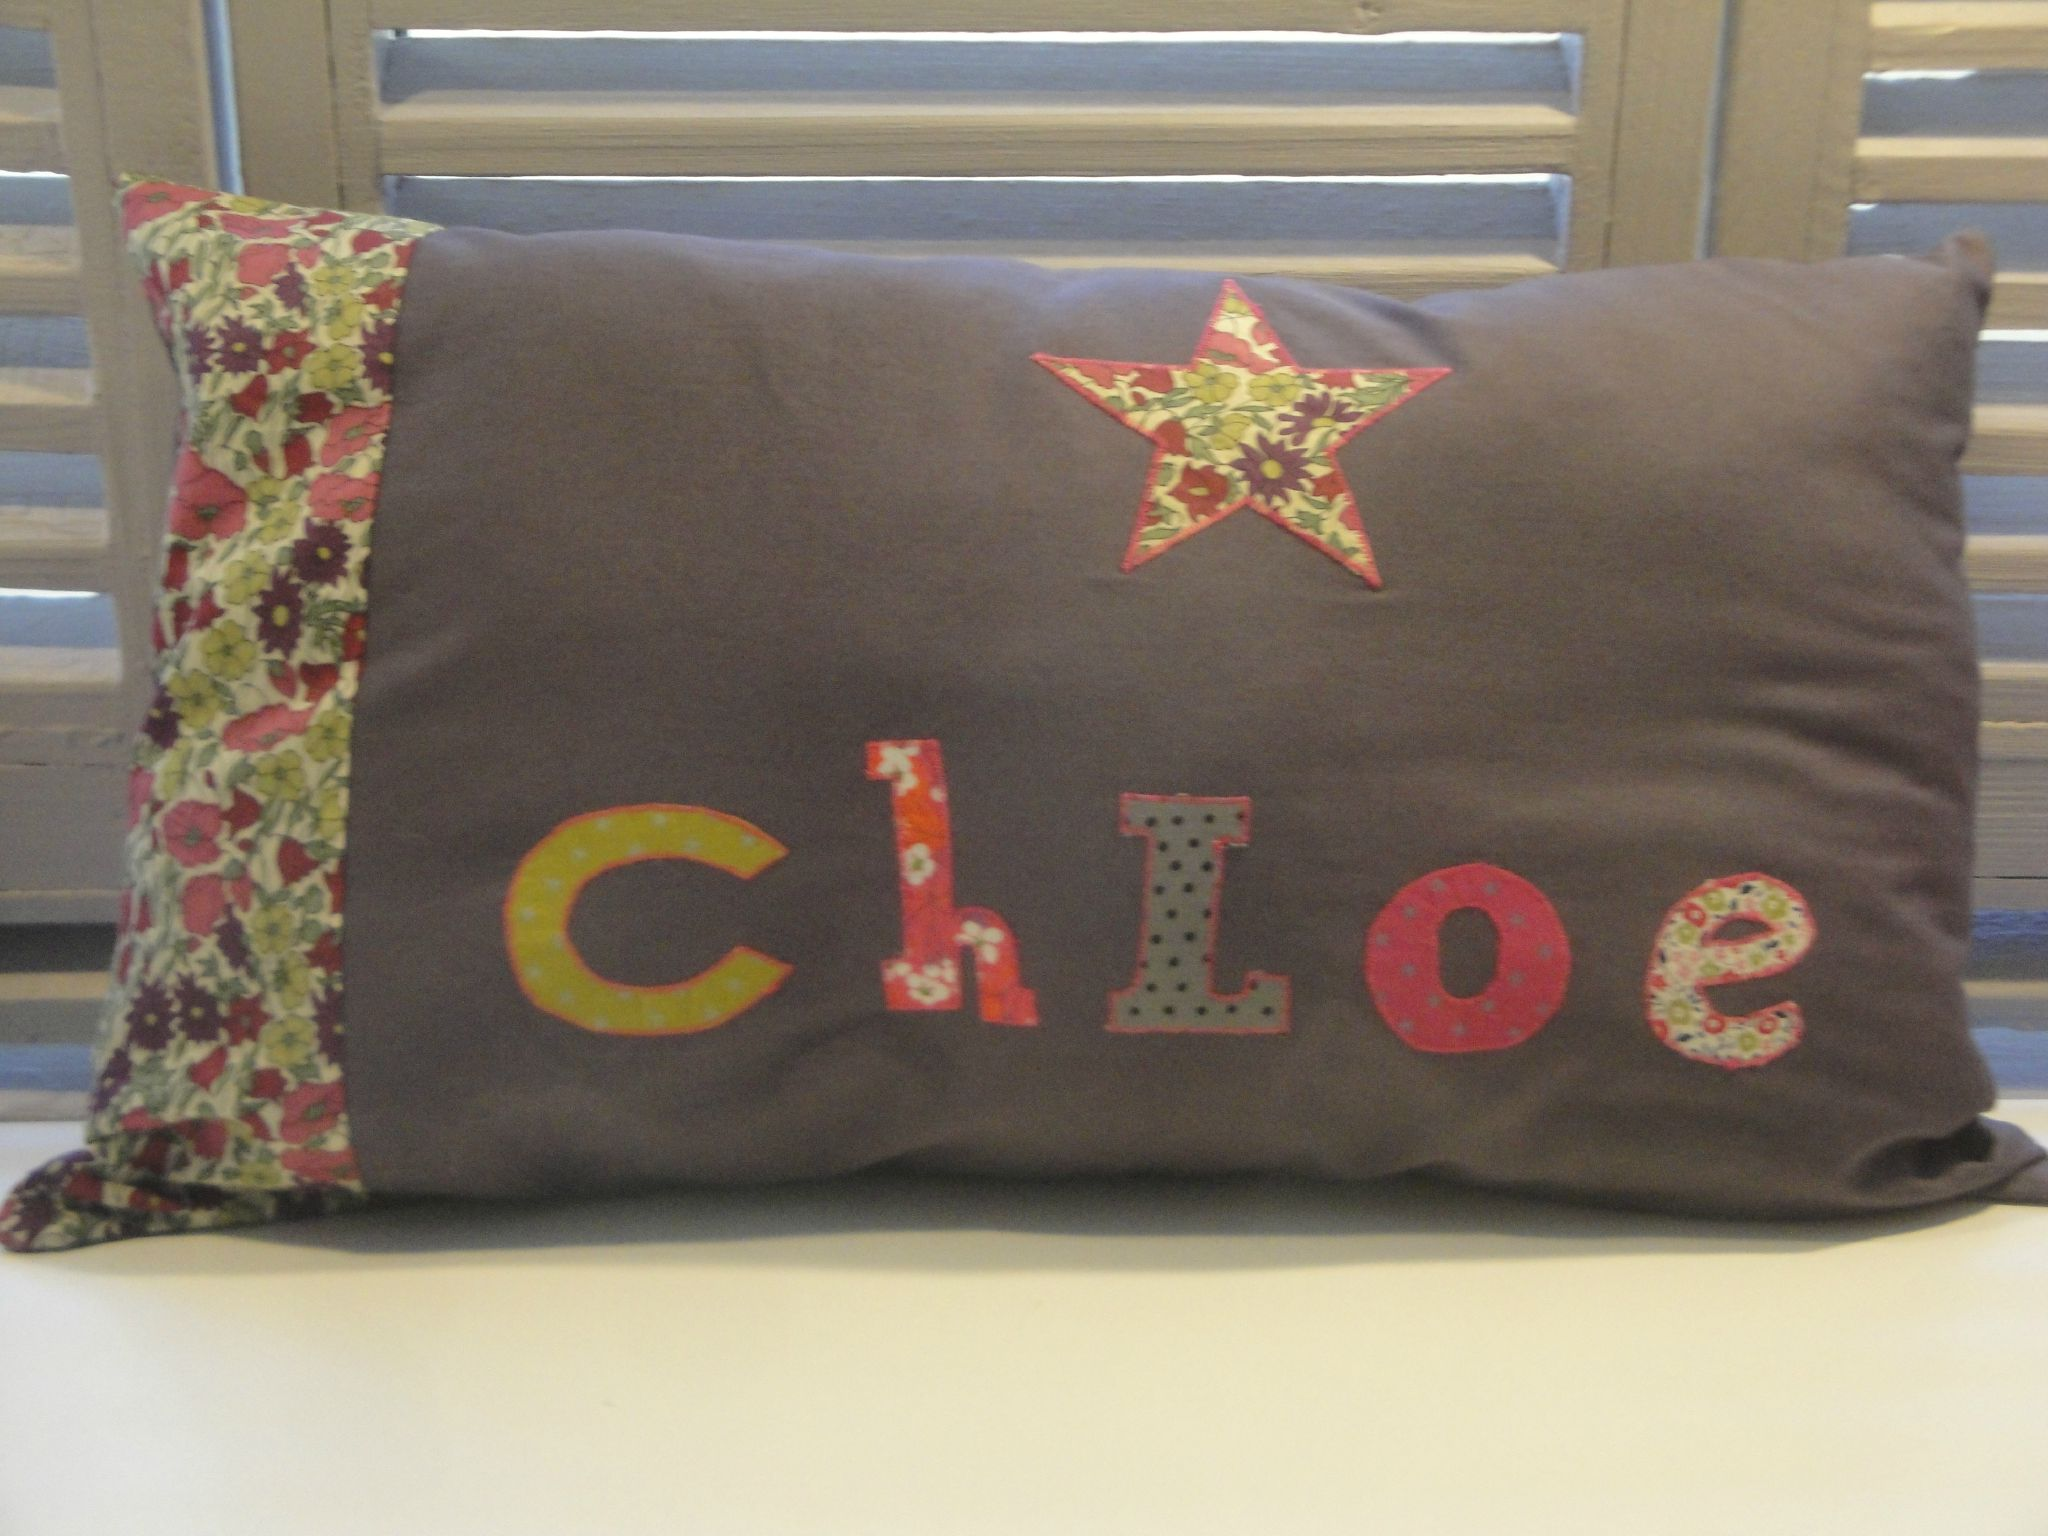 COUSSIN PERSONNALISE CHLOE (6)